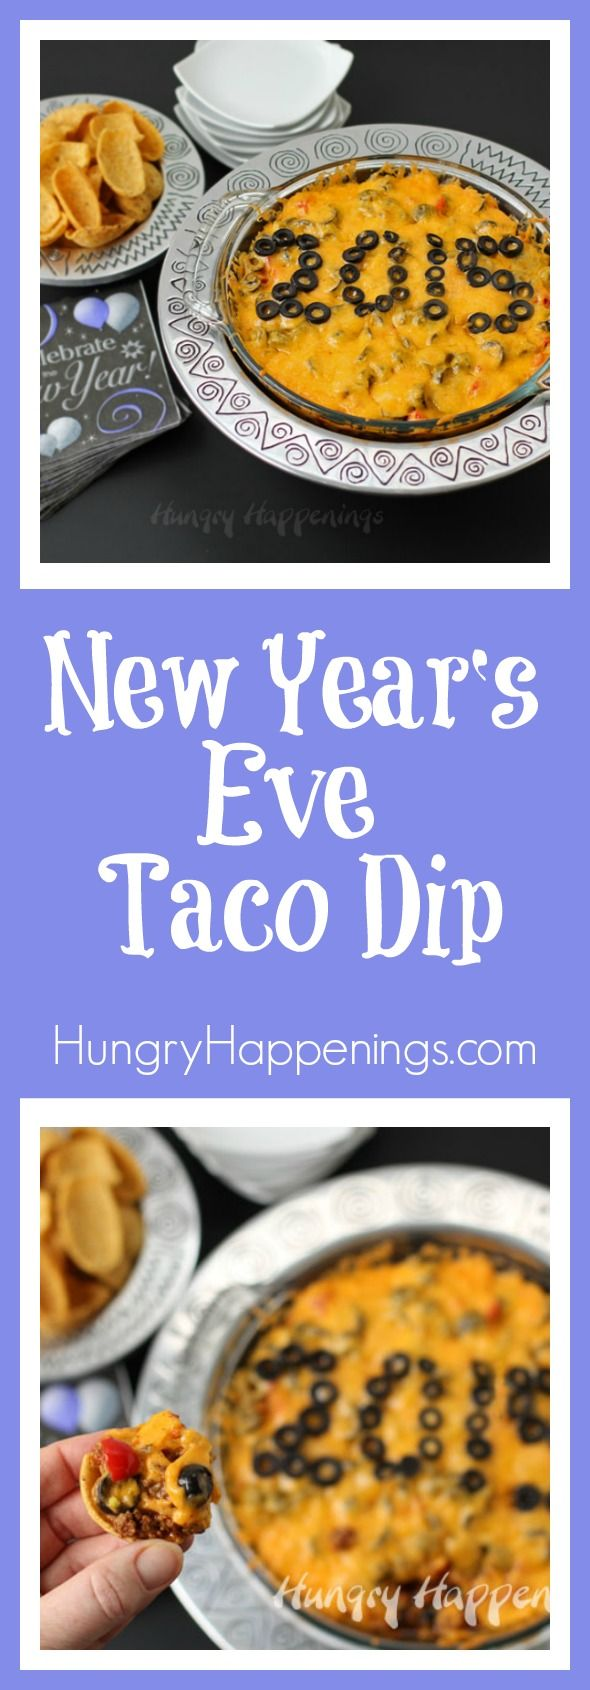 Here's a last minute dish you can serve at your New Year's Eve party. This Taco Dip which can be made hot and spicy or mild and cheesy, is easy to decorate, and everyone loves it.